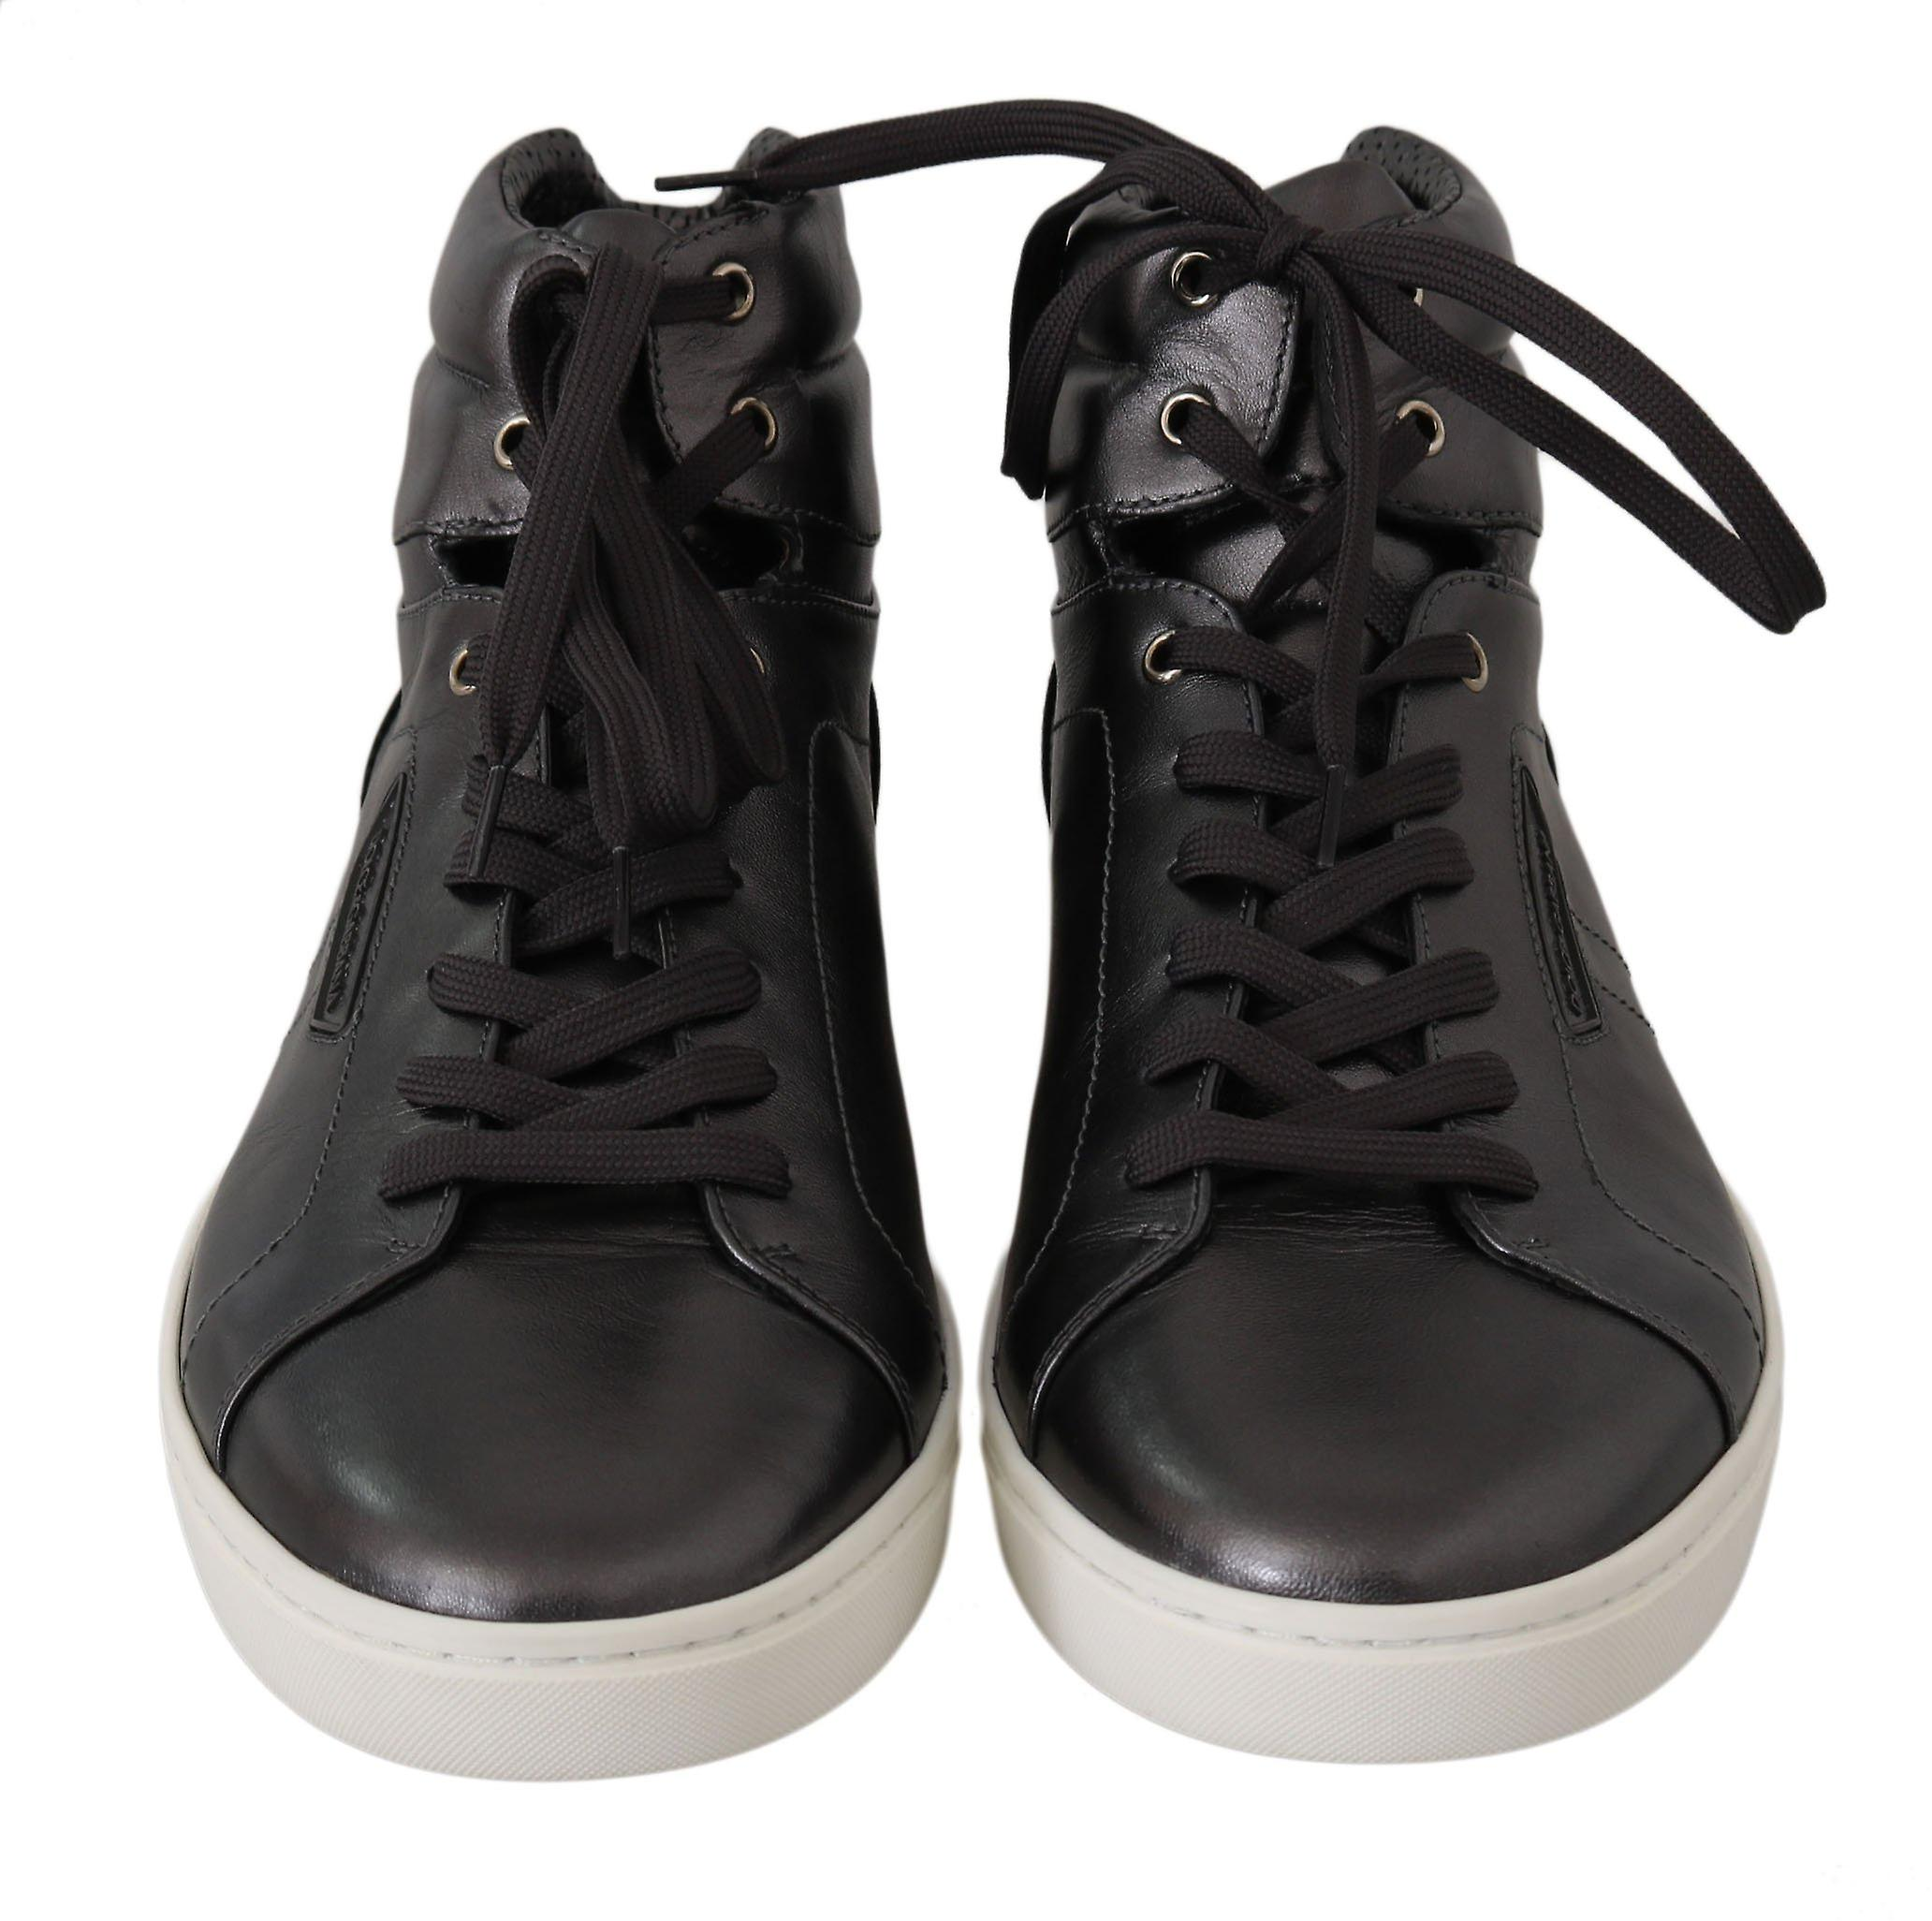 Dolce & Gabbana Gray Leather Mens High Top Sneakers Mv2341-39